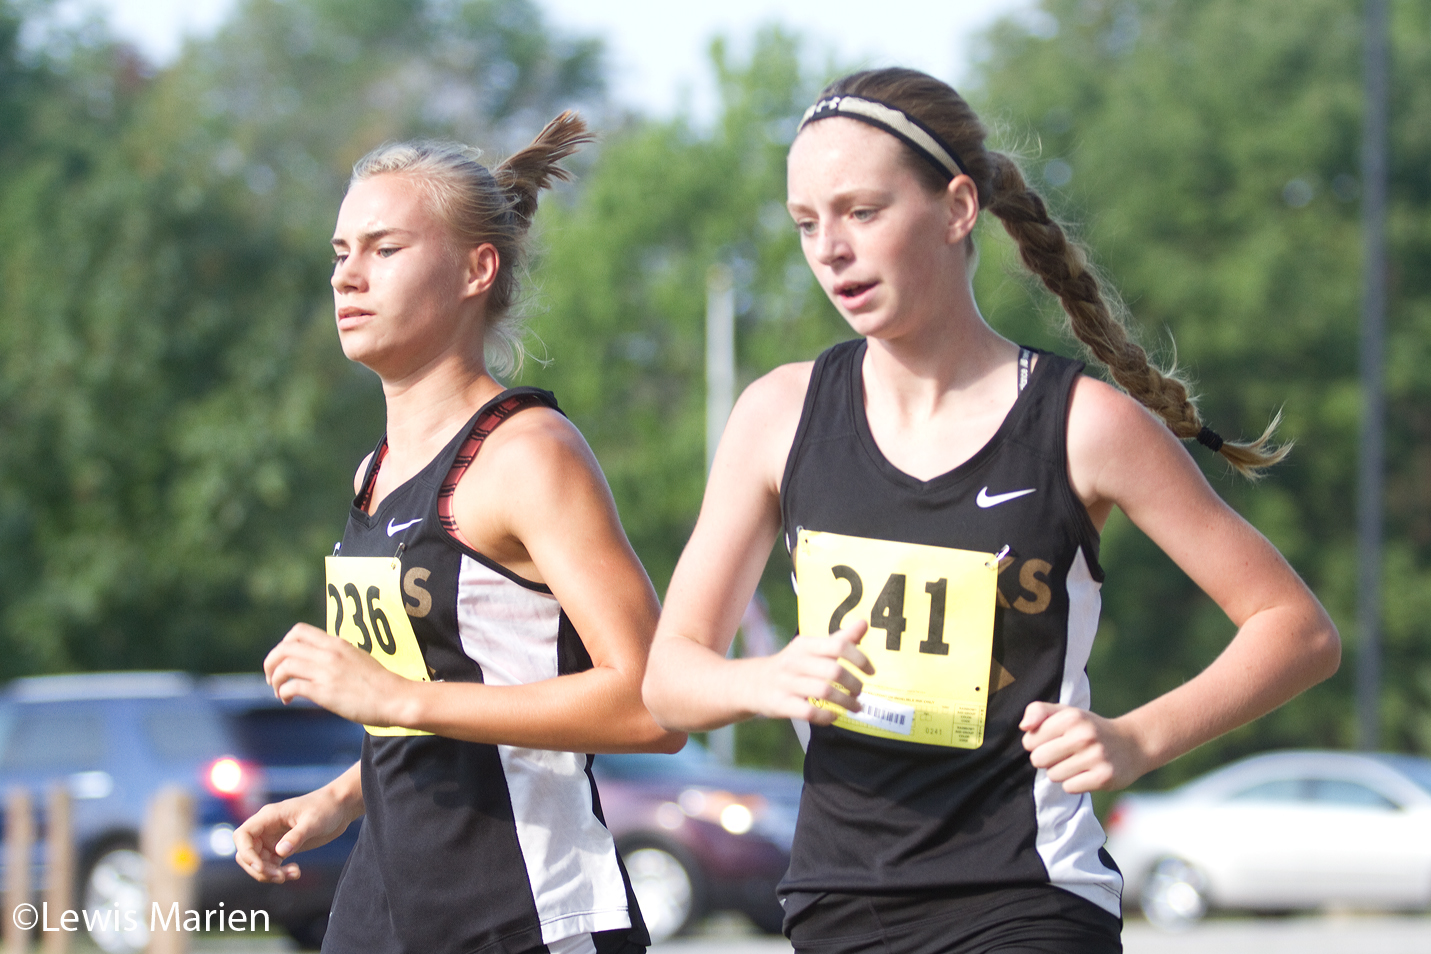 Galesburg's Anastasia Beetler, left, and Kaitlyn Pendergast compete in the varsity girls race on Sept. 5 during the Silver Streaks Invite at Lake Storey in Galesburg, Ill. Pendergast took fifth place in the race and the girls team finished in sixth overall.